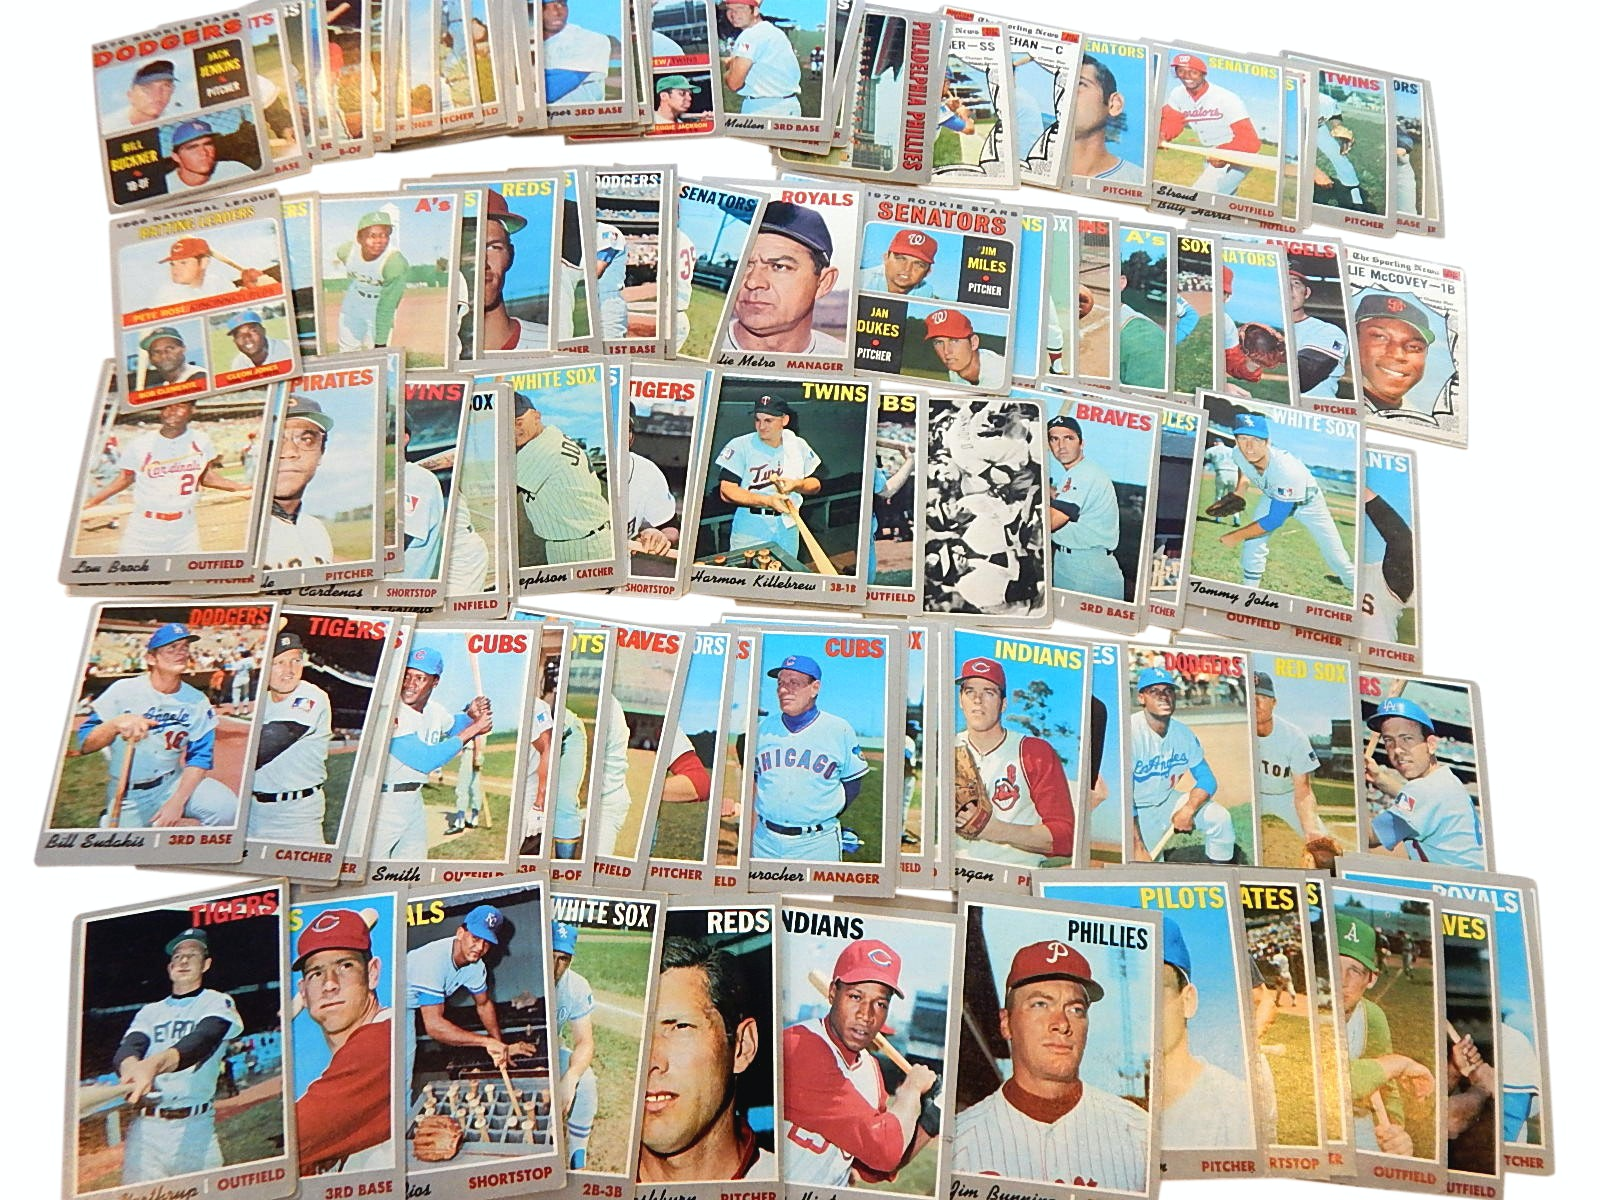 1970 Topps Baseball Card Collection with Killebrew, Rose, Brock and More